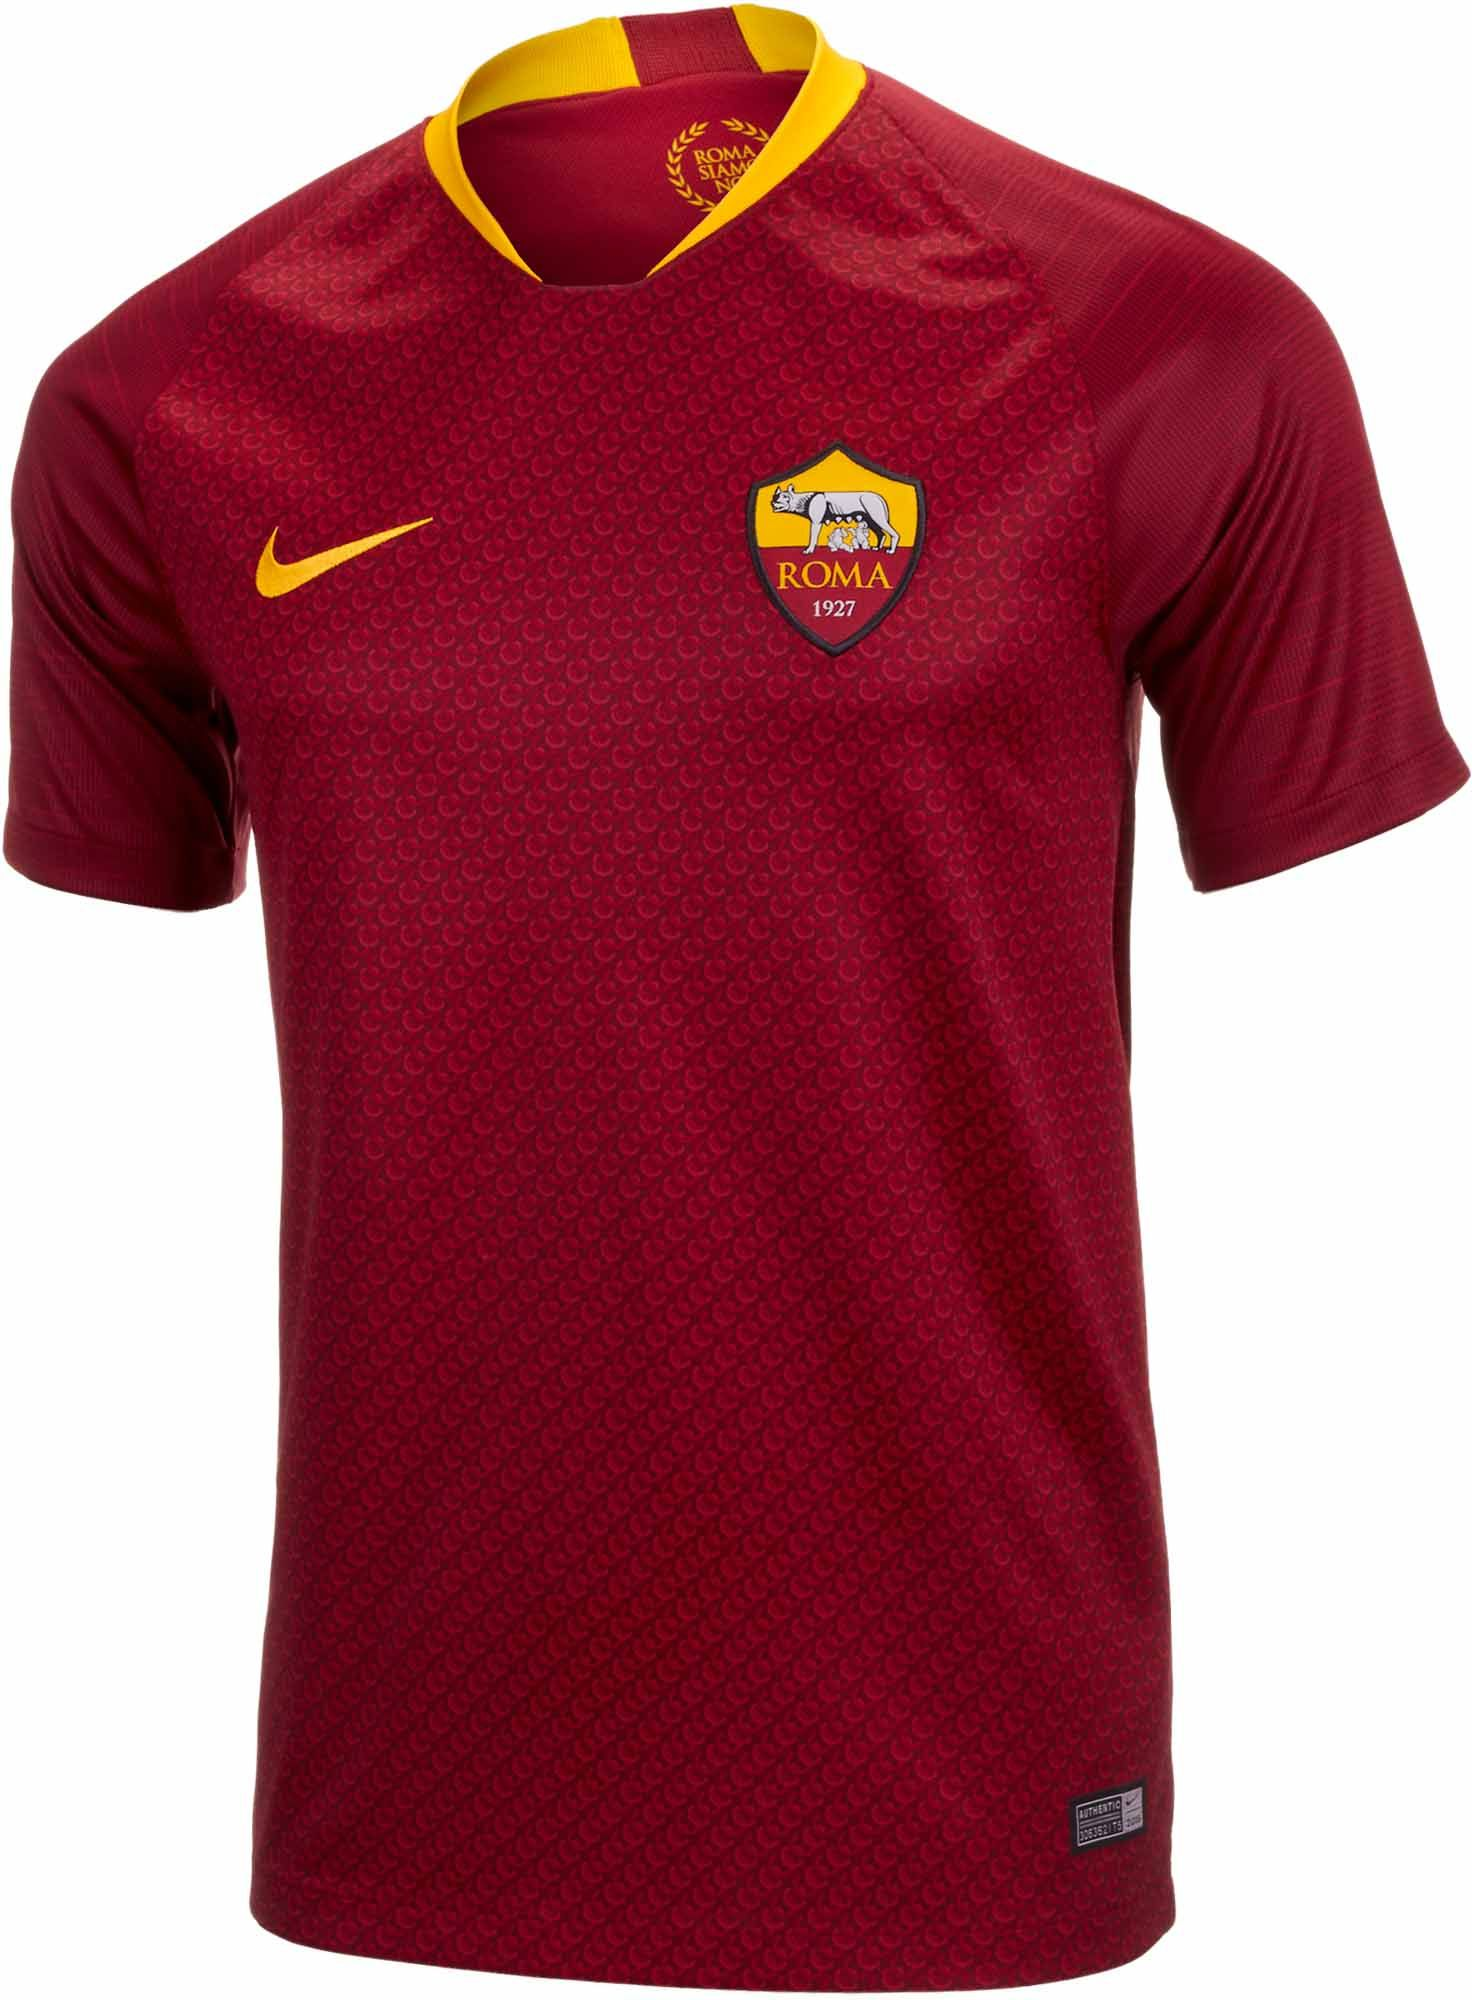 627cd642c The 2018 19 Nike AS Roma Home Jersey. Buy it from www.soccerpro.com